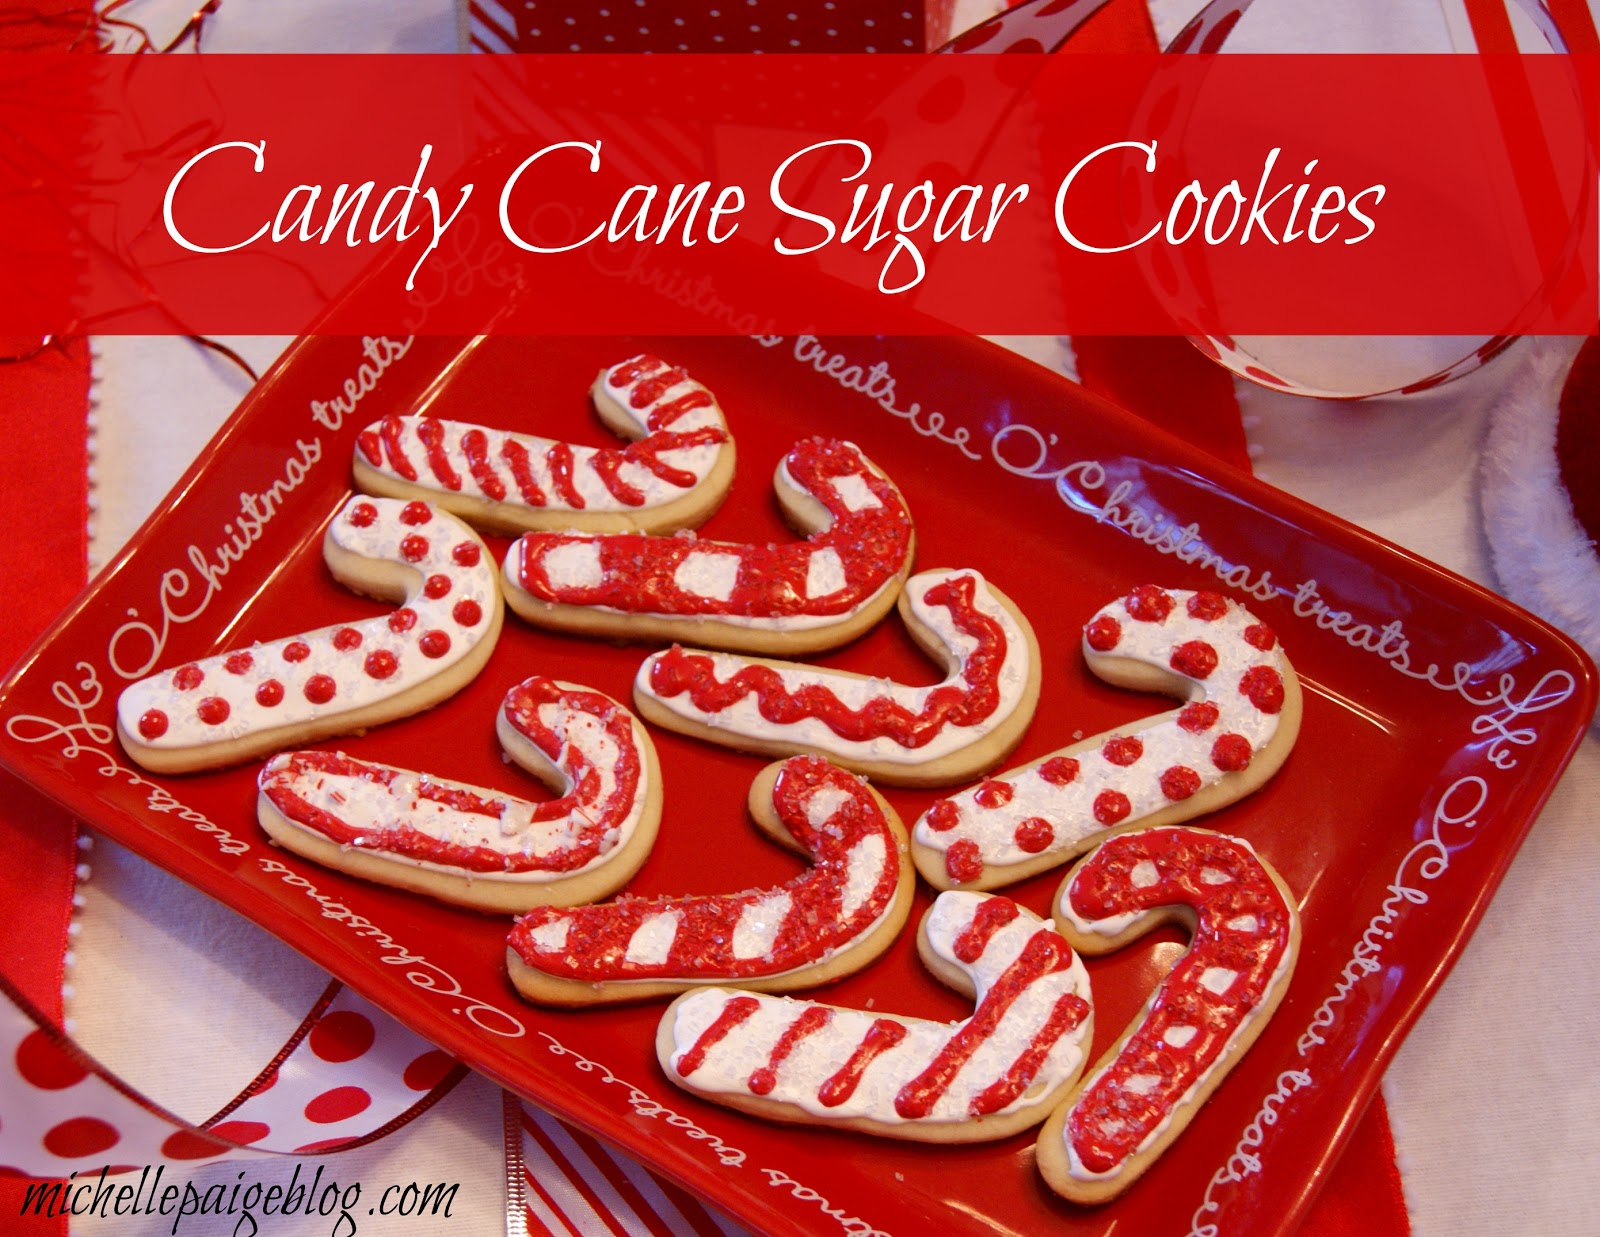 Michelle Paige Blogs Candy Cane Sugar Cookies